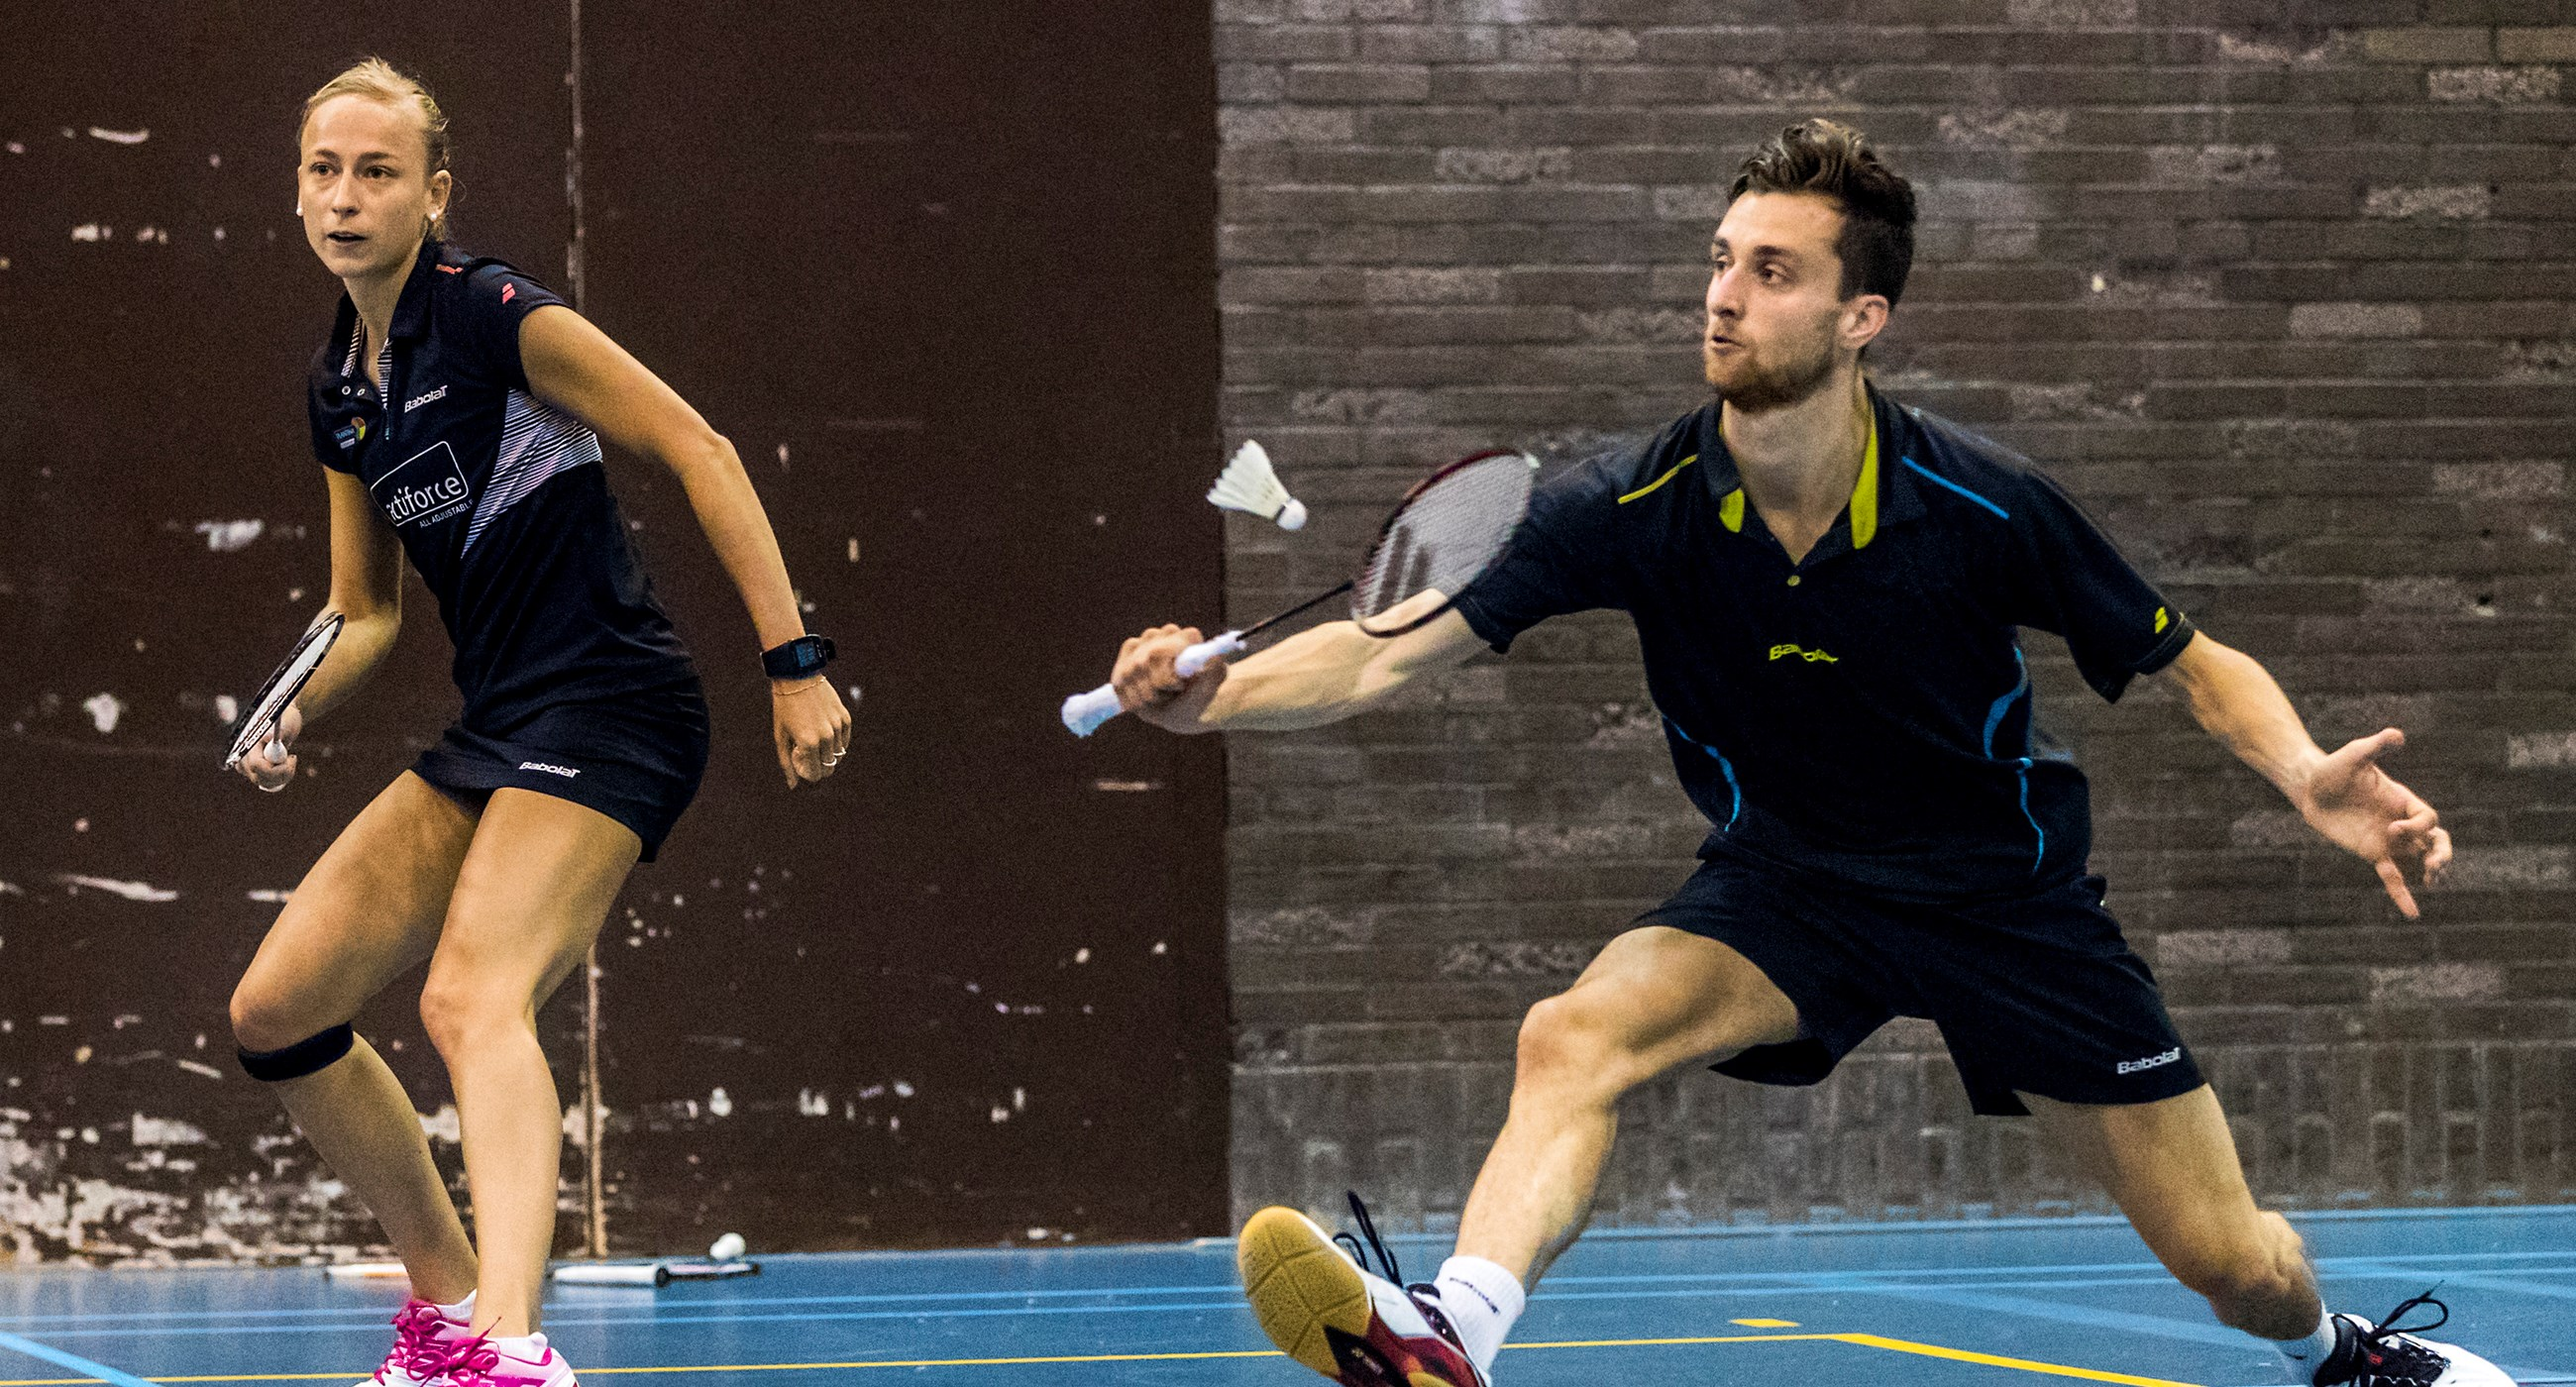 Belgian International, badminton